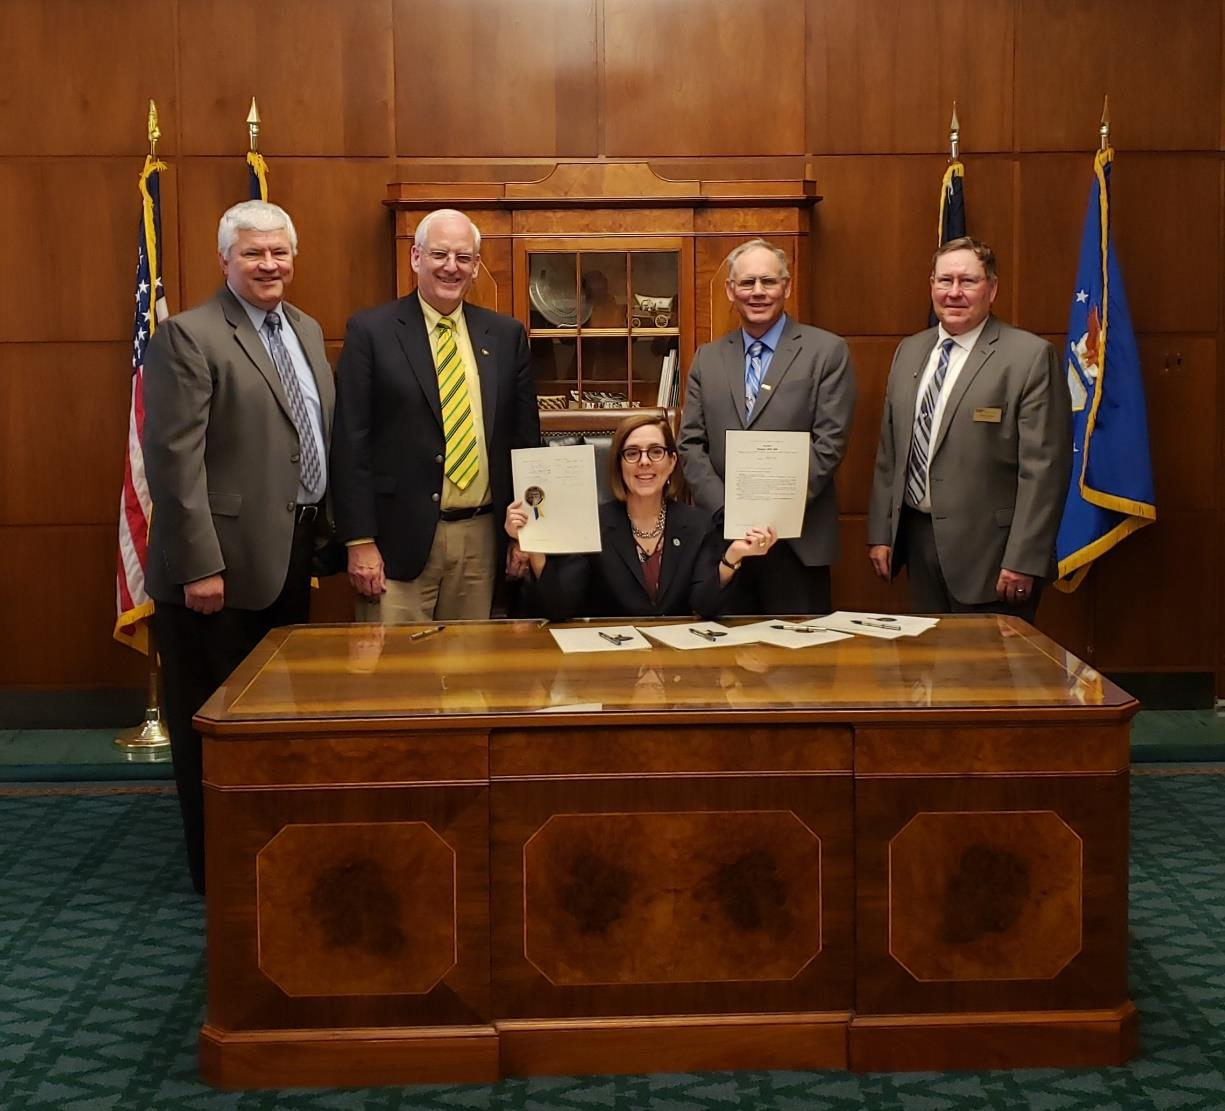 Senator Hansell and Members of the Wheat Growers League with Governor Kate Brown.